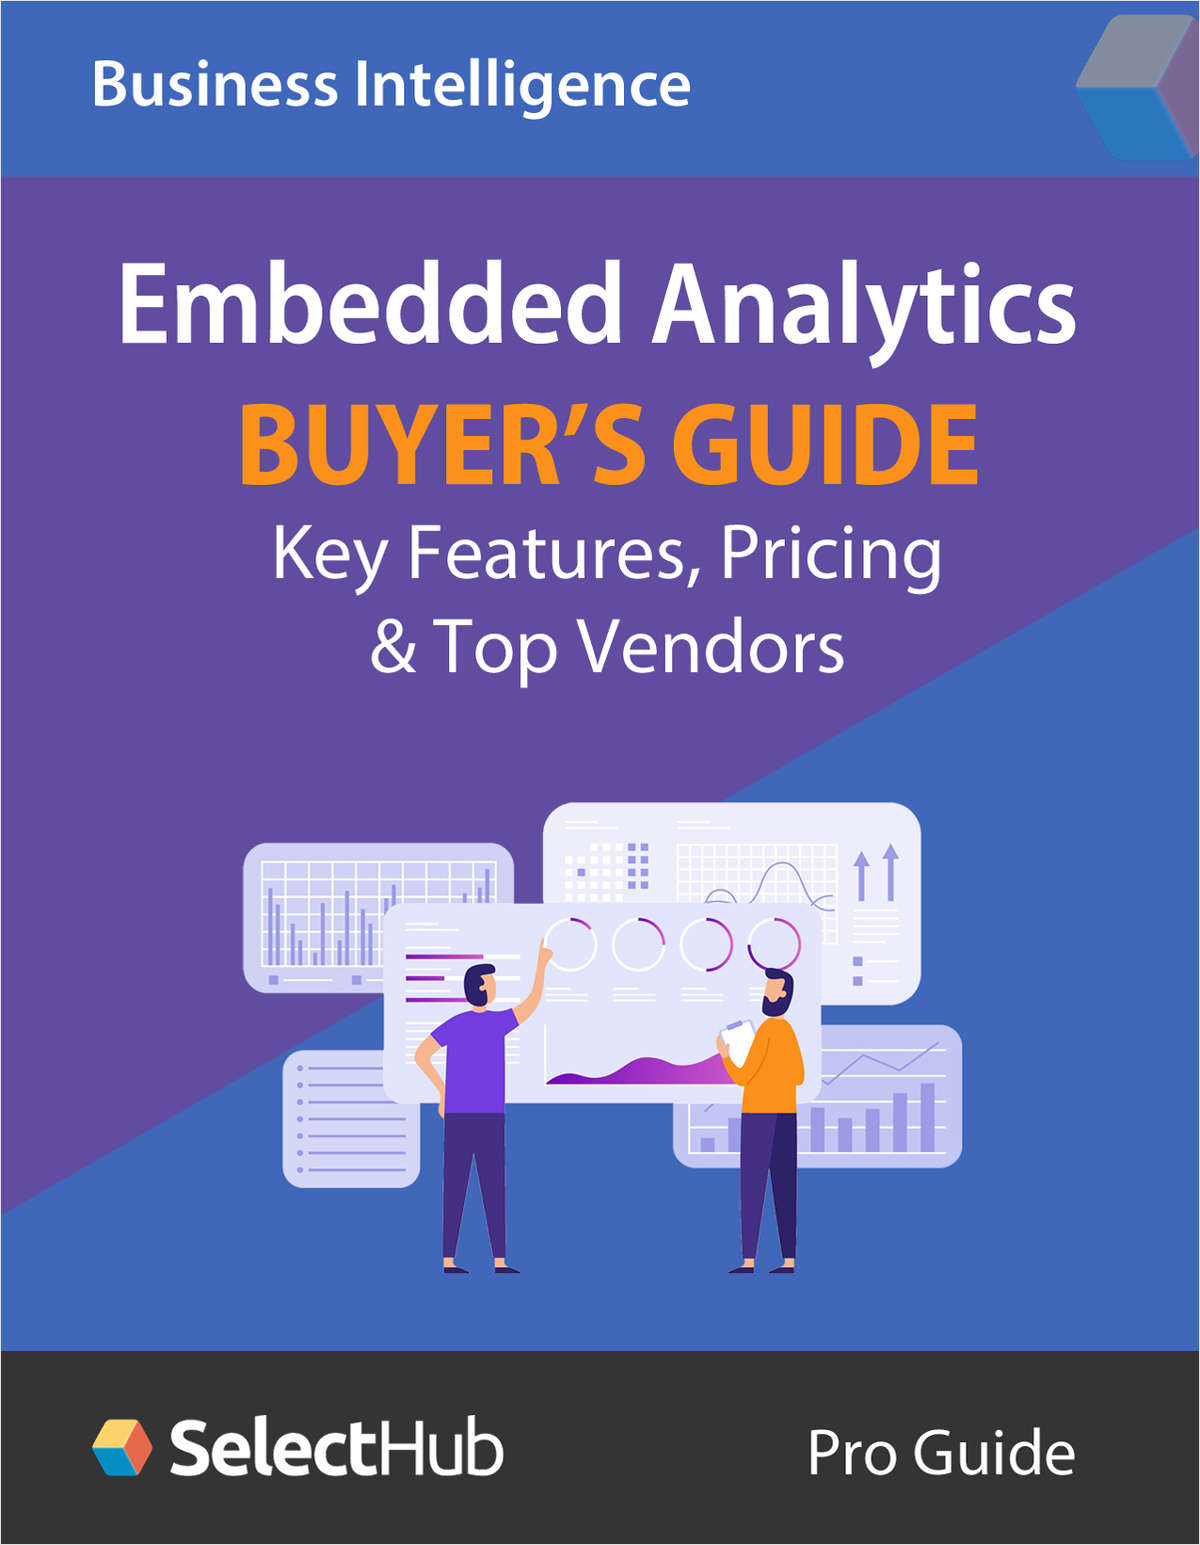 Embedded Analytics Tools Buyer's Guide: Features, Pricing & Top Vendors